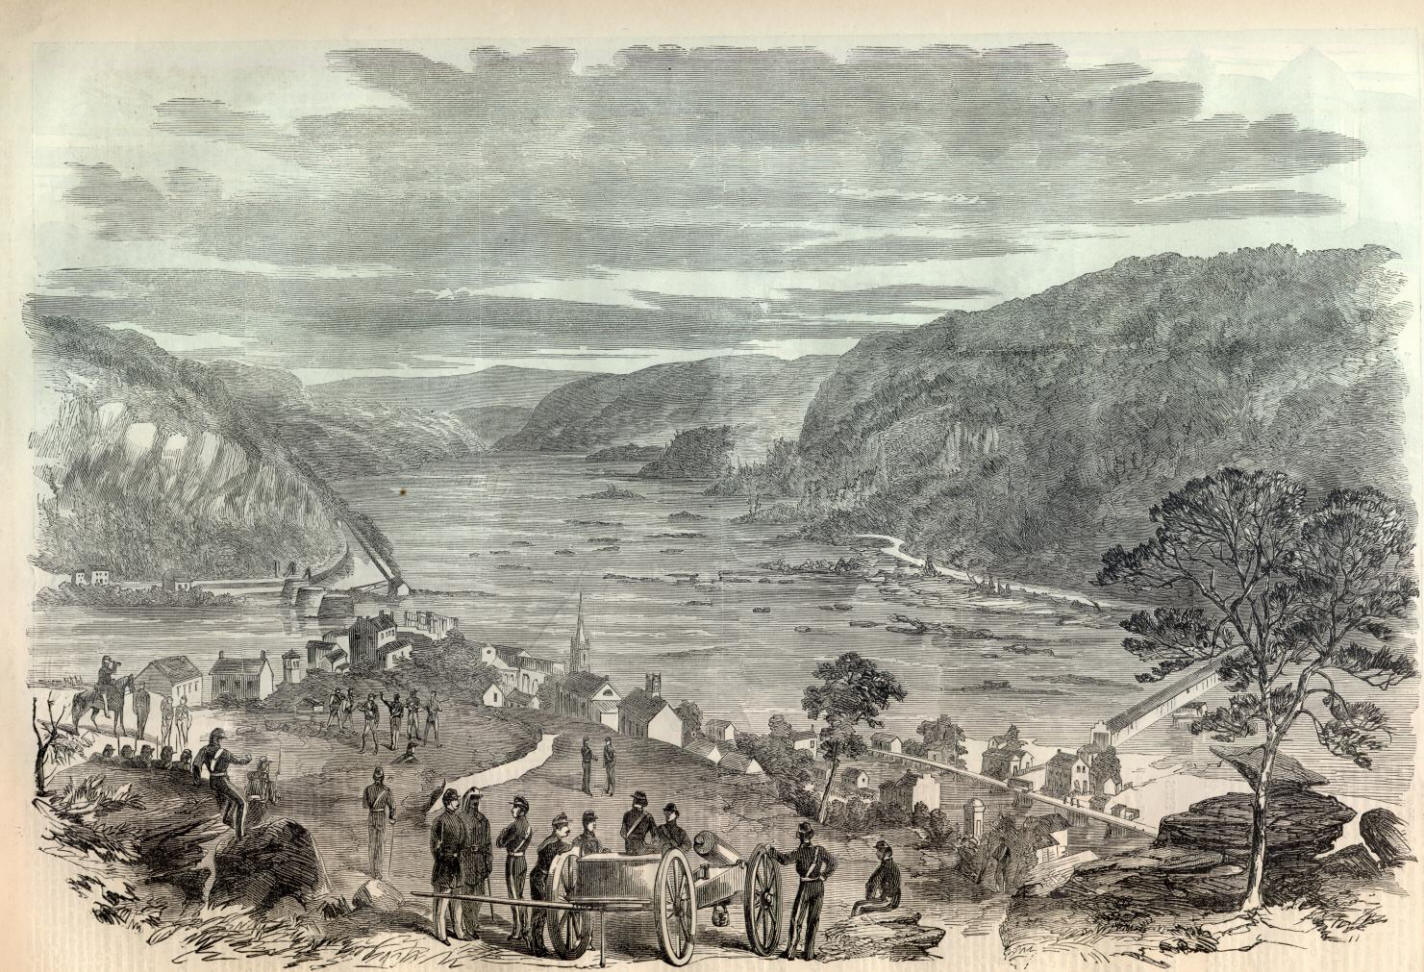 the life and work of john brown in torrington connecticut Brown was named for his grandfather, a connecticut farmer and  saltbox in the  stony hills of torrington, connecticut, and had another son  john brown also  wrote a short autobiography, in his case for a young admirer.